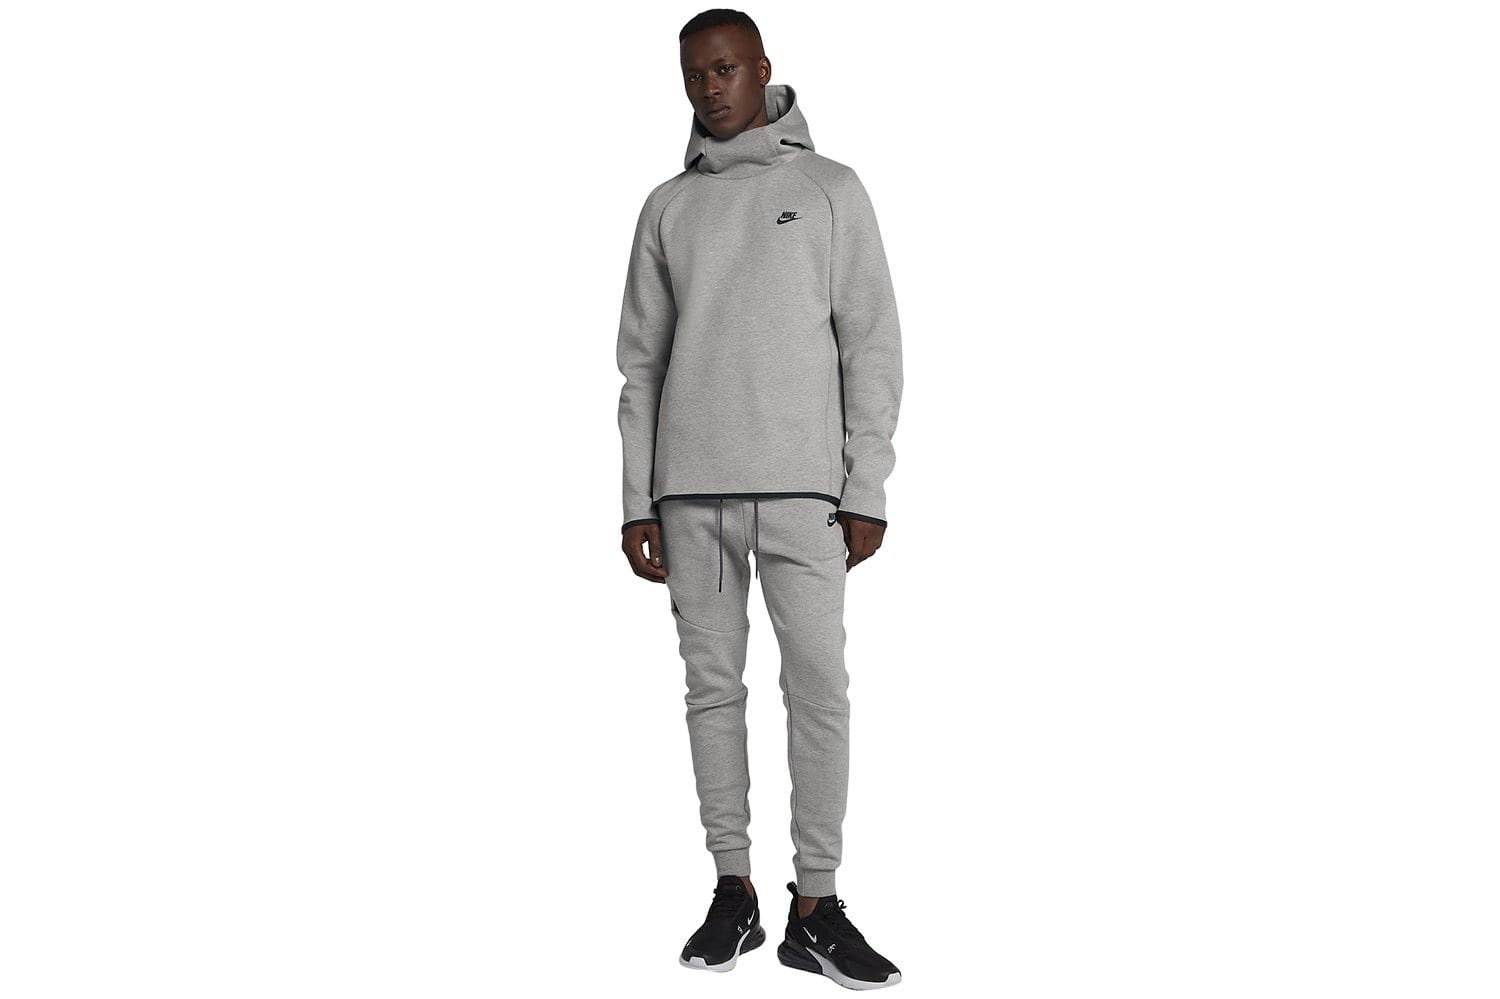 TECH FLEECE JOGGER - 805162-063 MENS SOFTGOODS NIKE